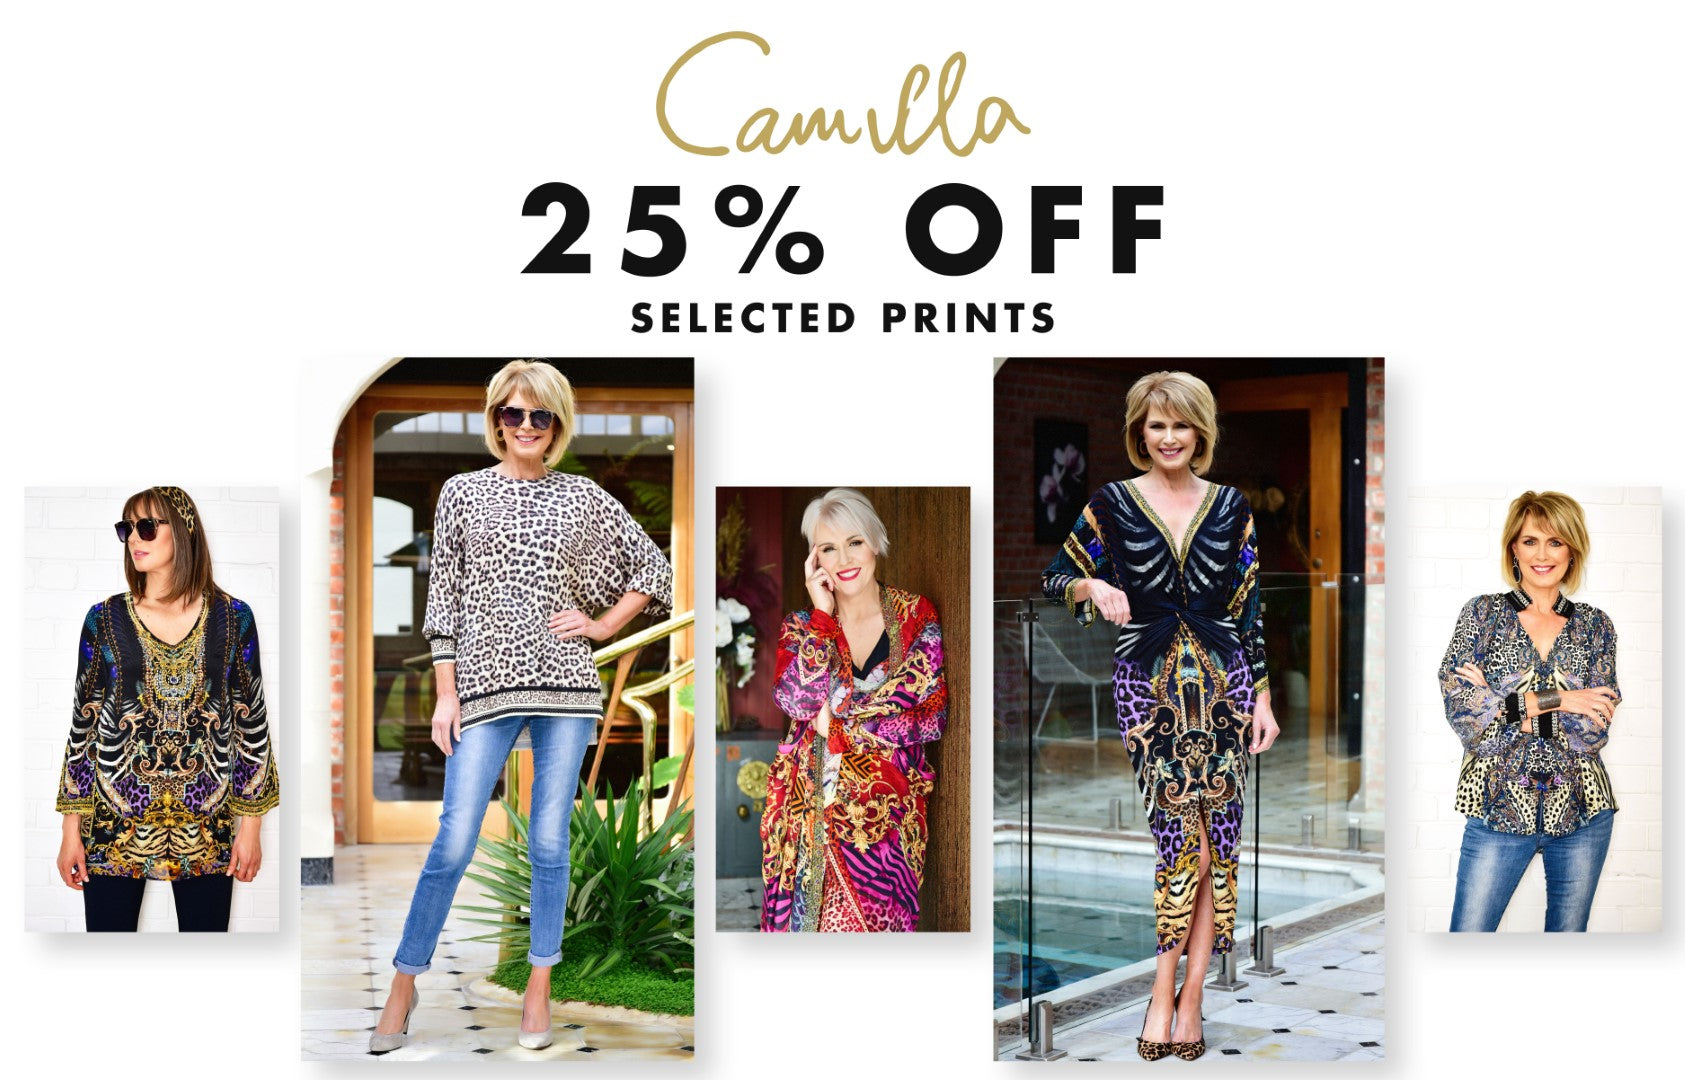 Camilla on sale